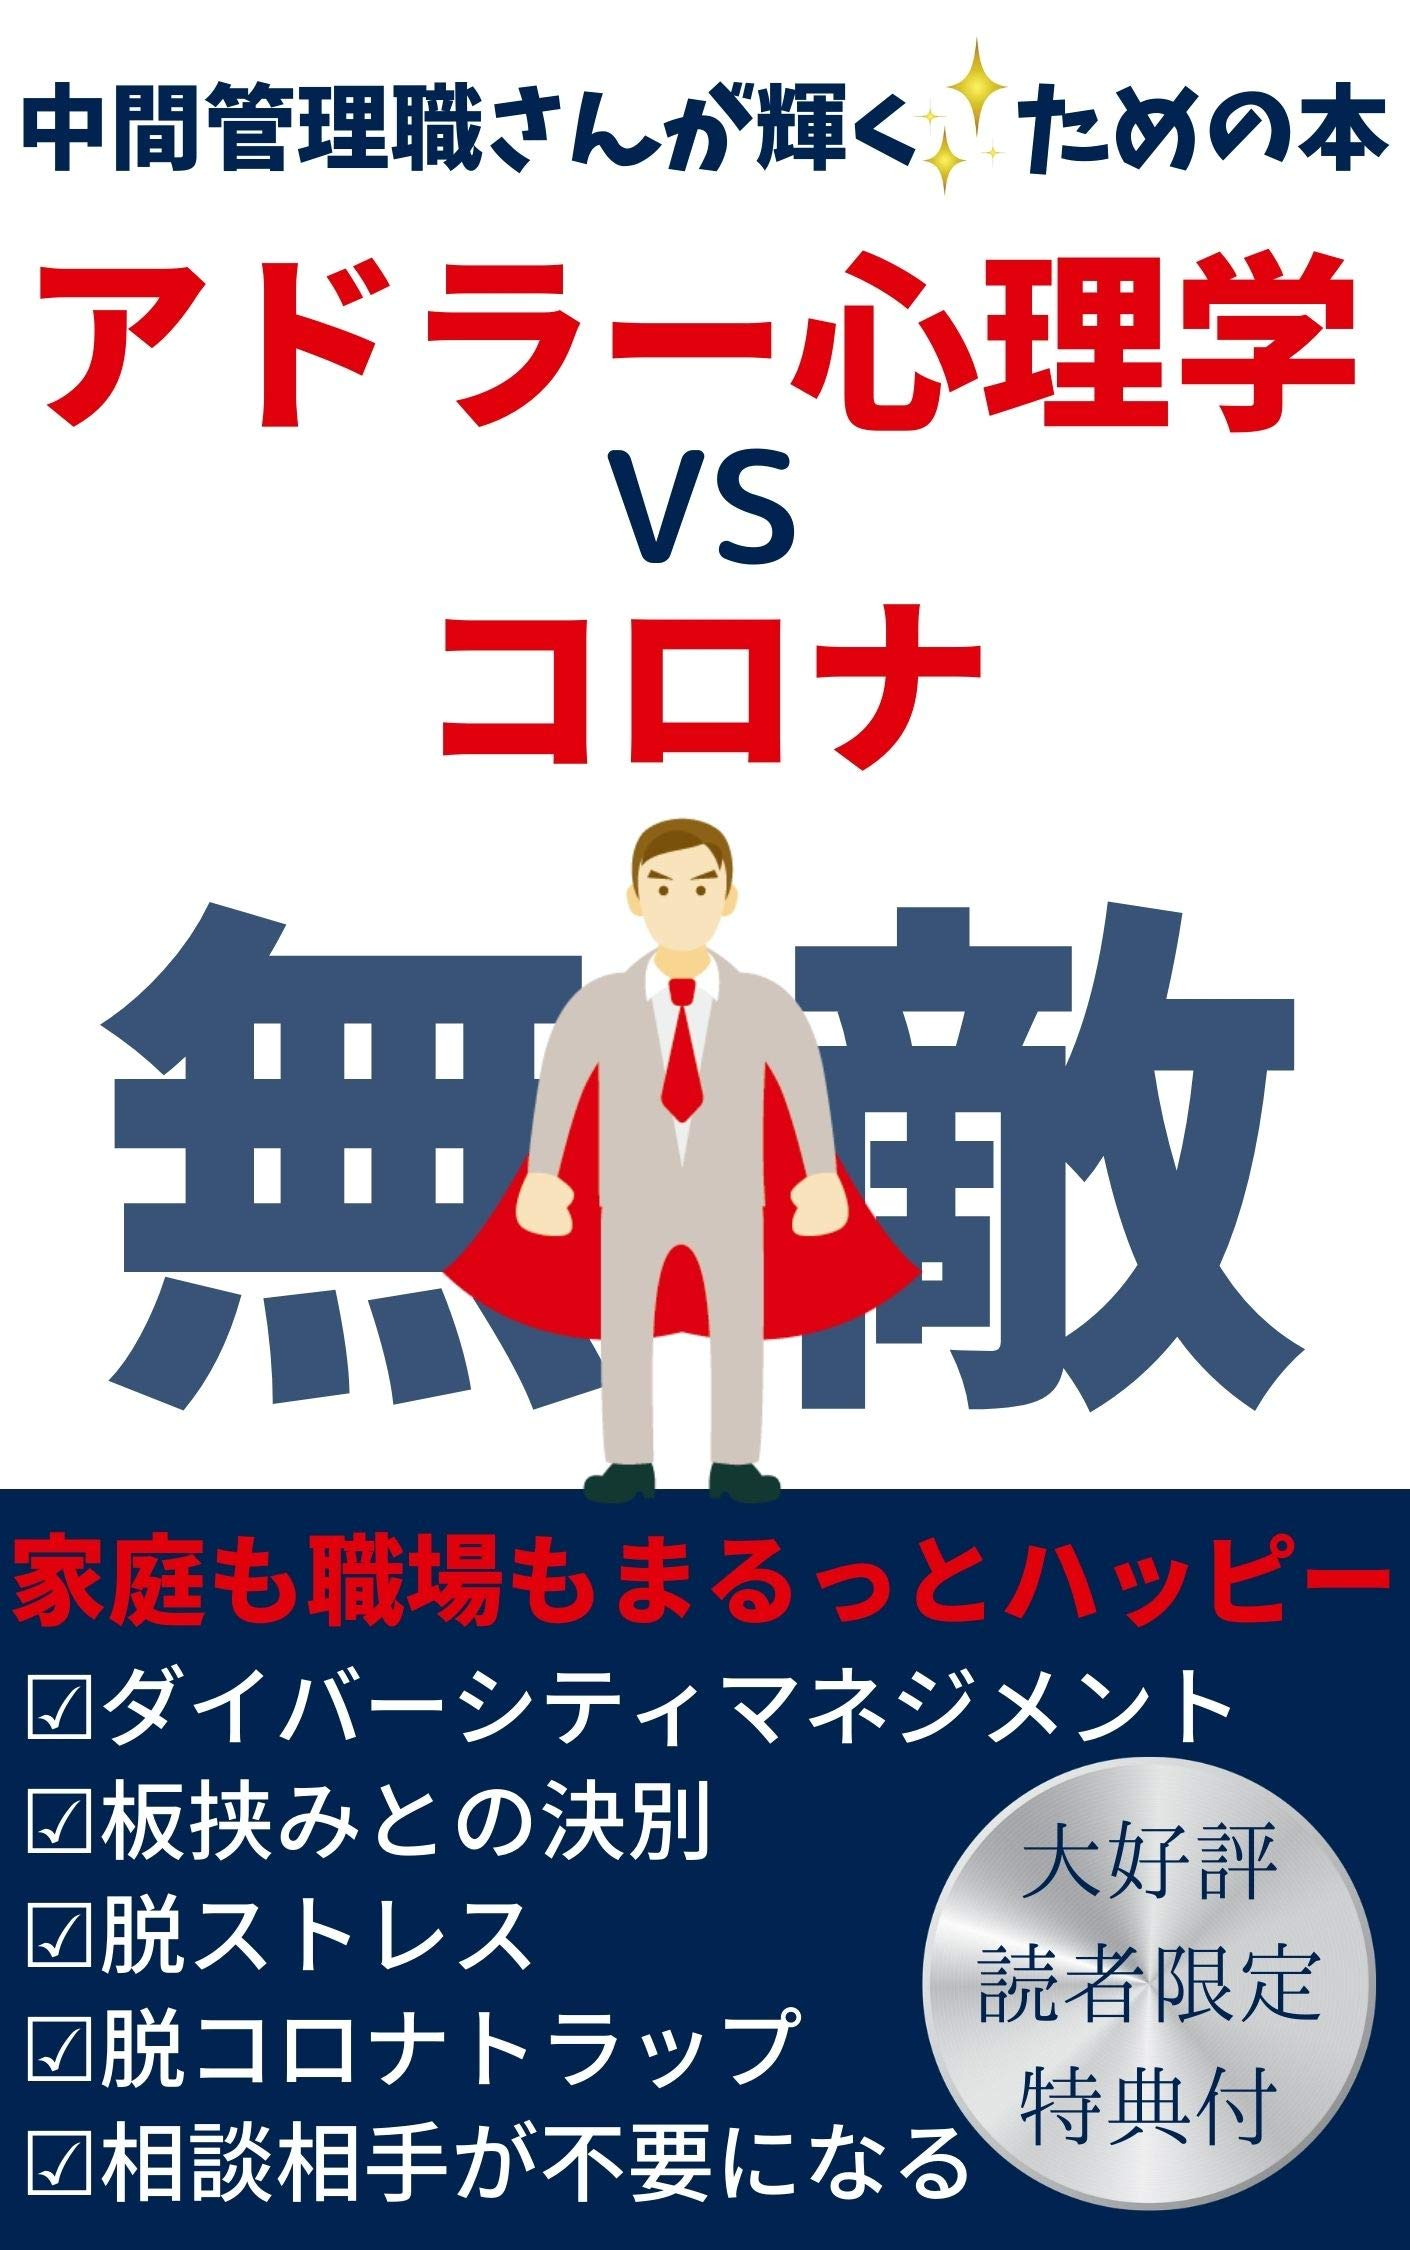 Adler individual psychology vs COVID-19: How to bright for Manager (Japanese Edition)